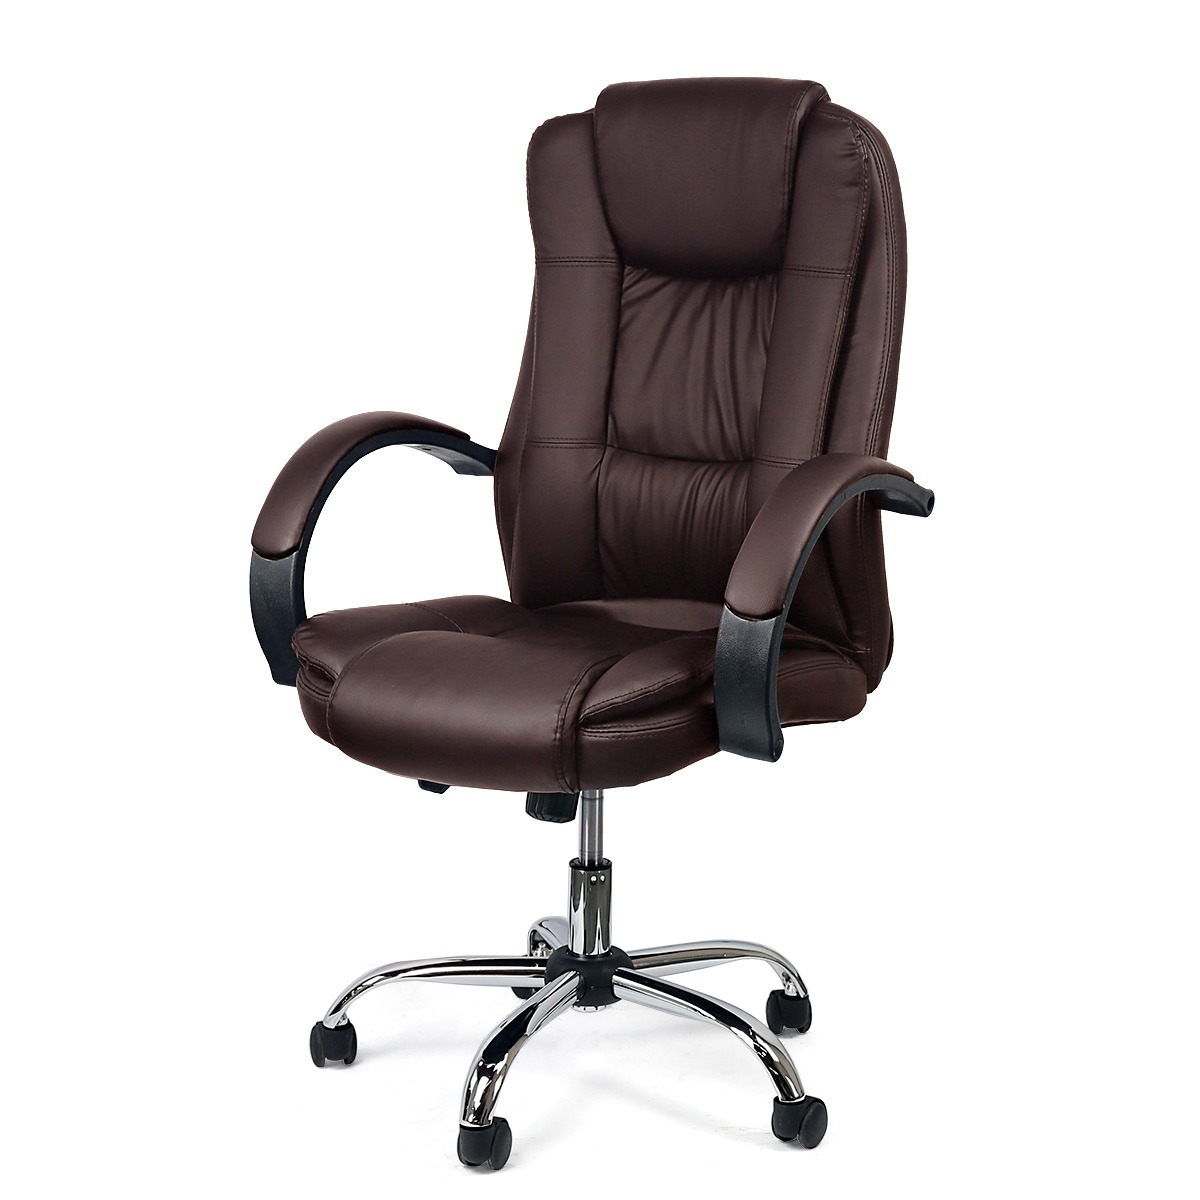 walmart leather office chair Manson High Back Office Chair Executive PU Leather Swivel Lift, Brown - Walmart.com